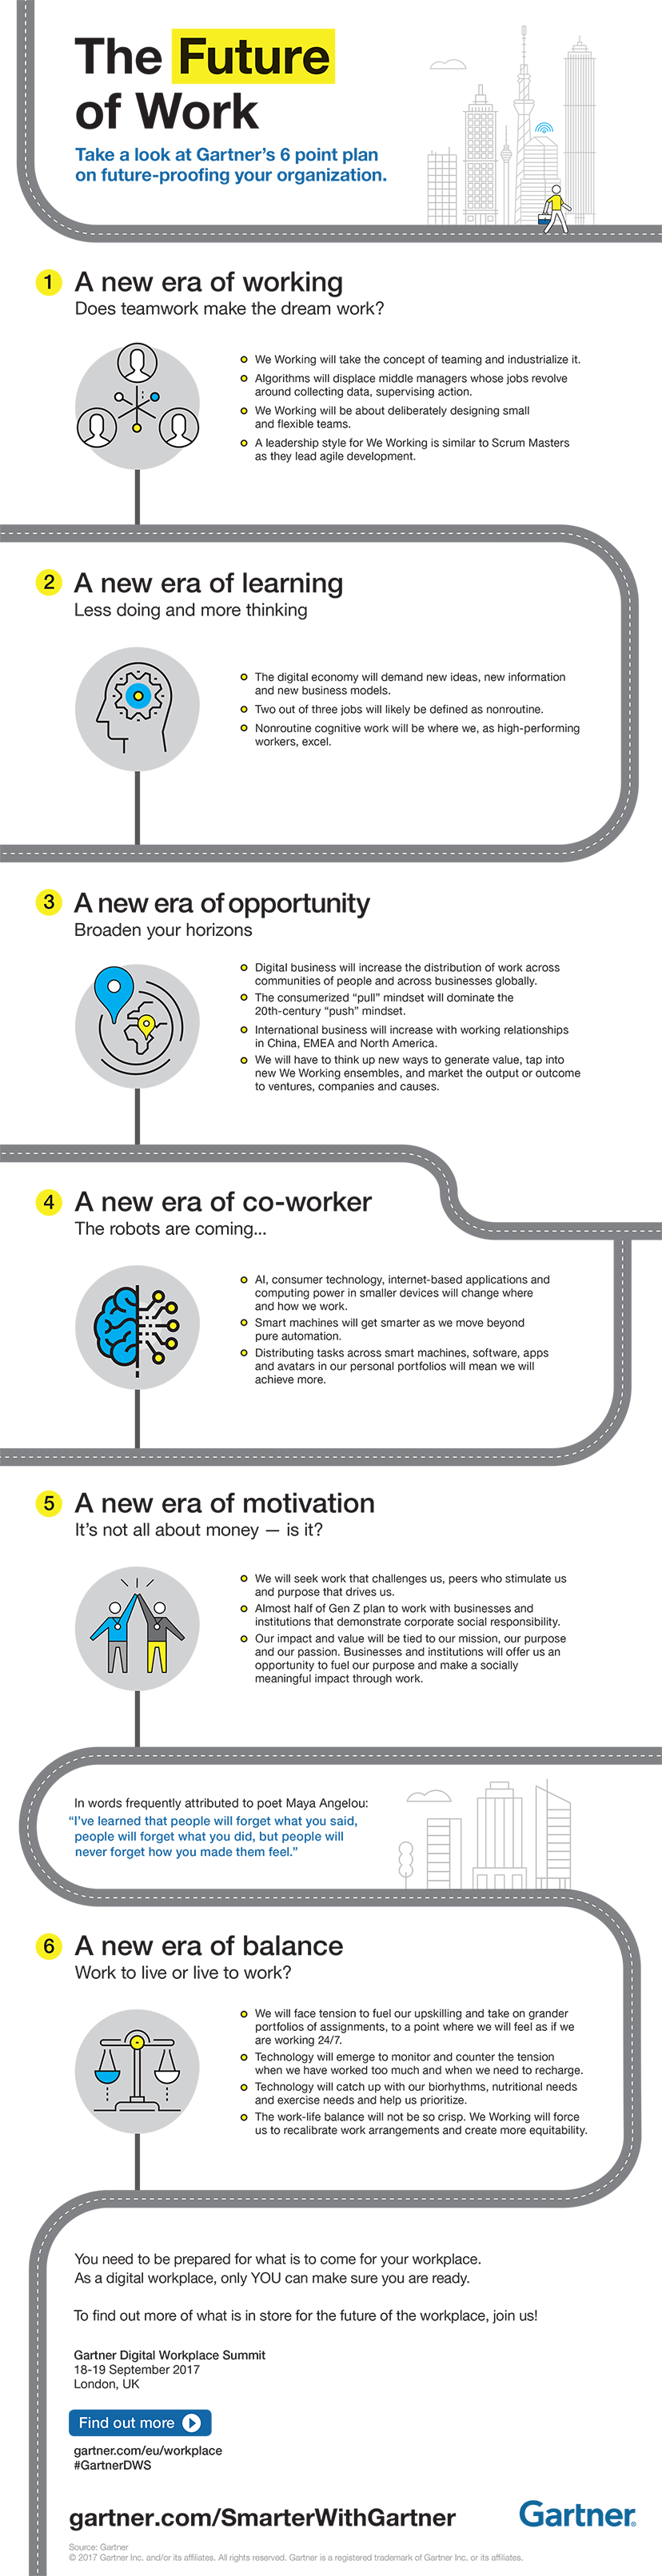 Gartner shows t point plan on the future of work